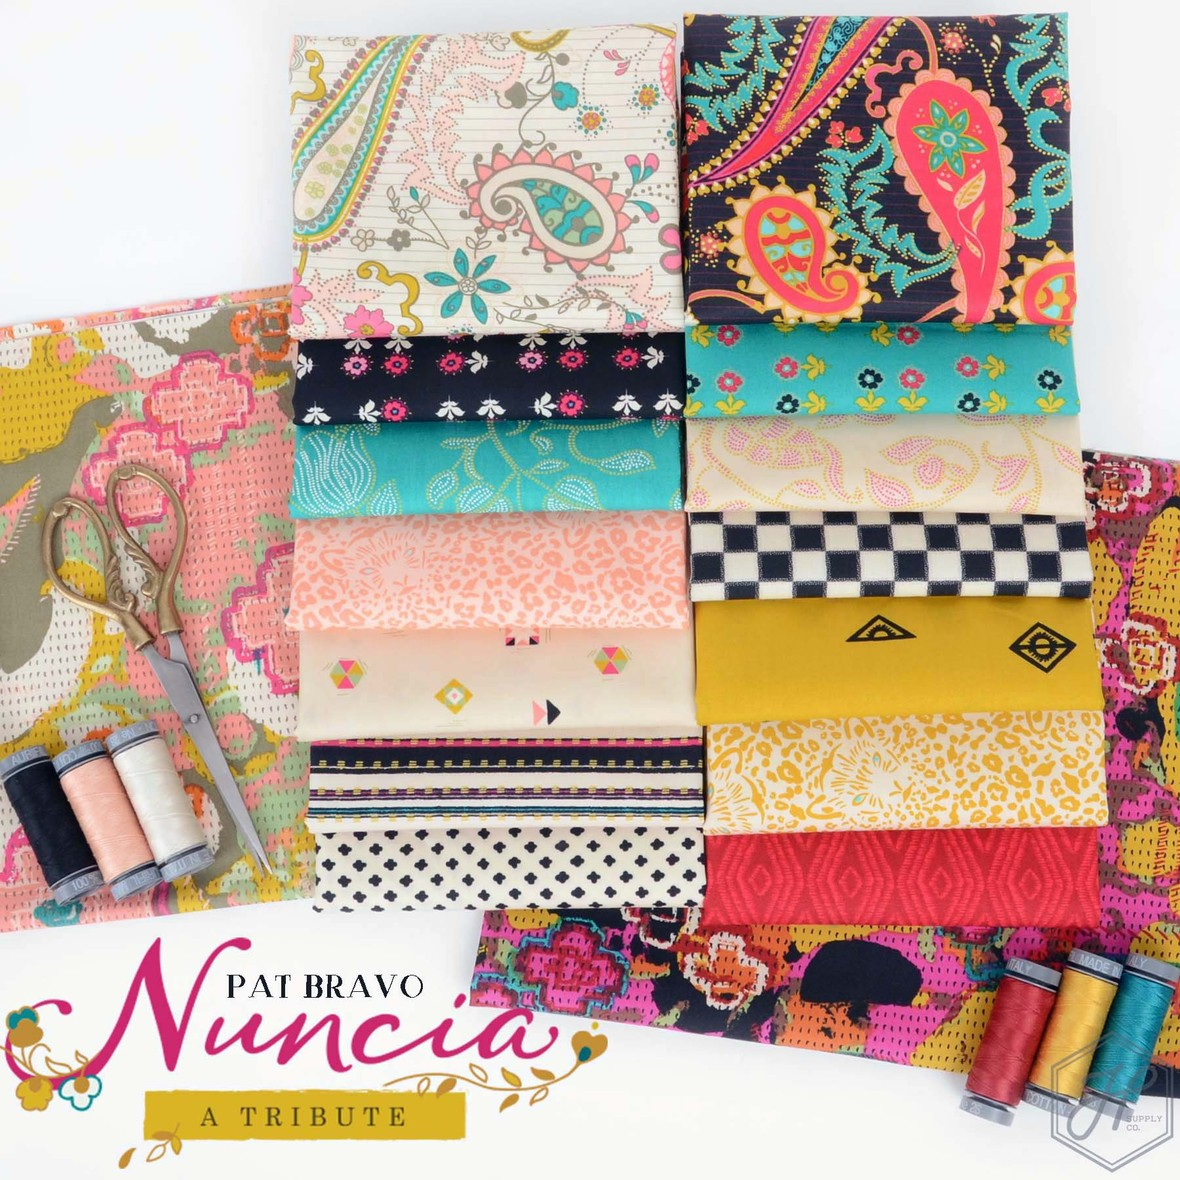 Nuncia Fabric Poster Art Gallery at Hawthorne Supply Co